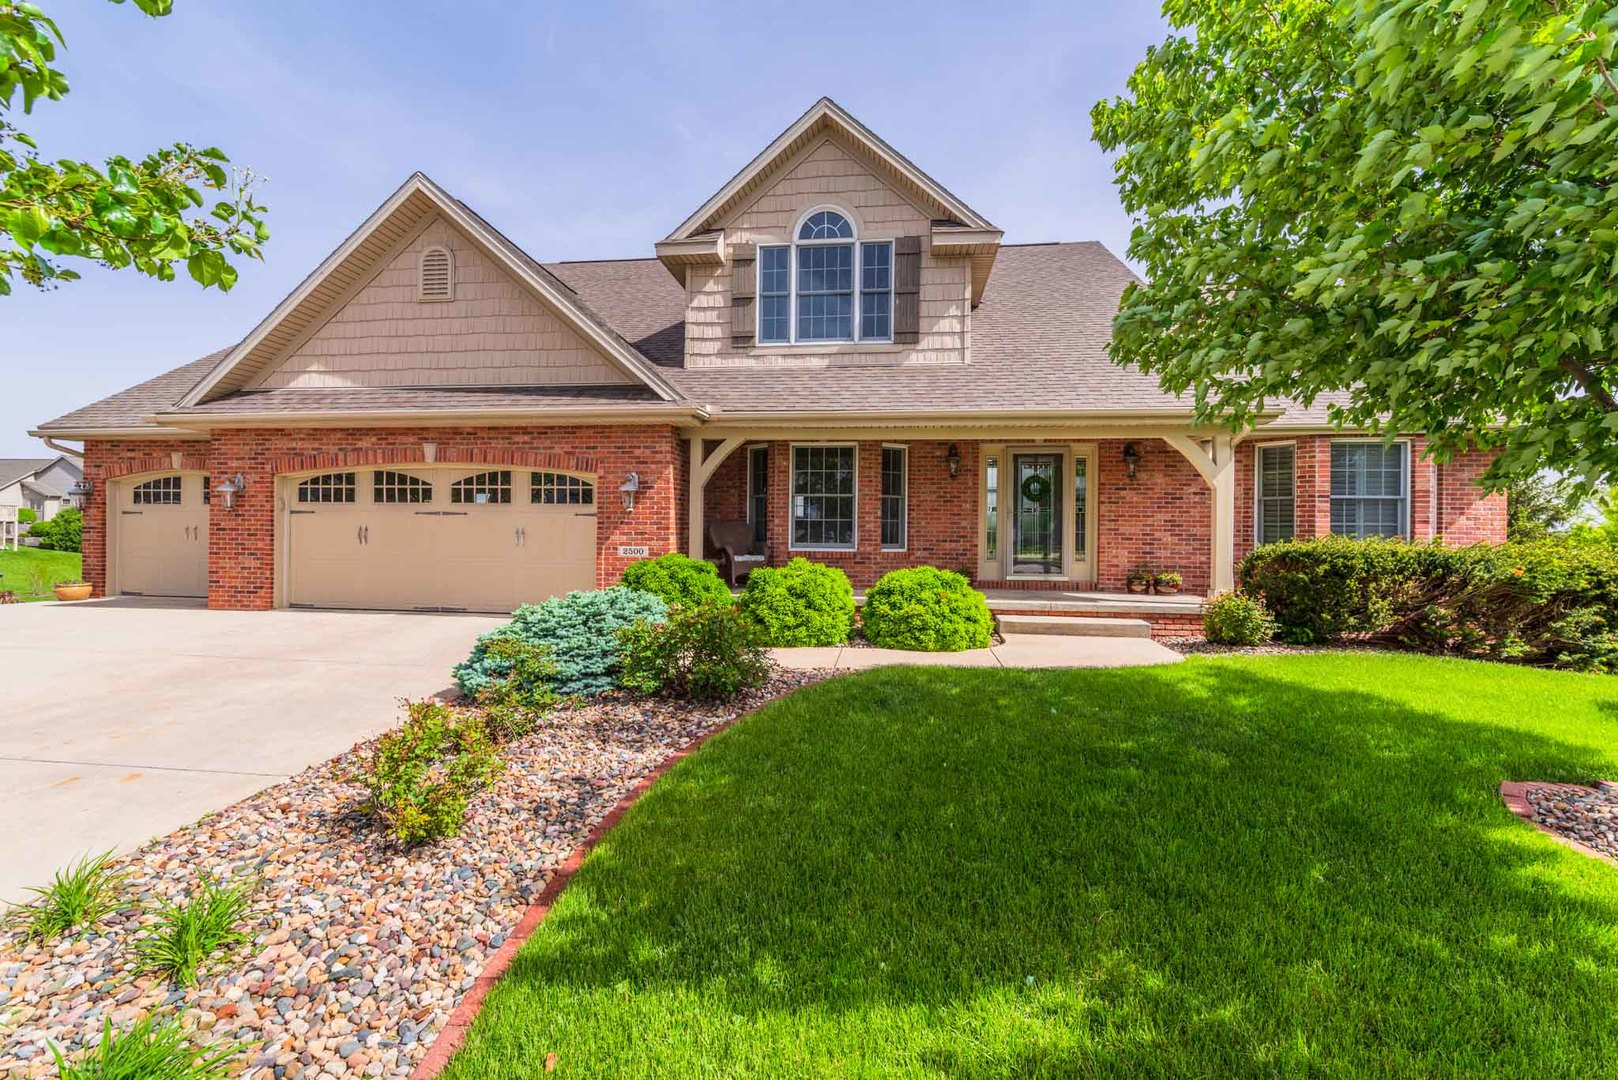 Homes For Sale In Normal Real Estate In Normal